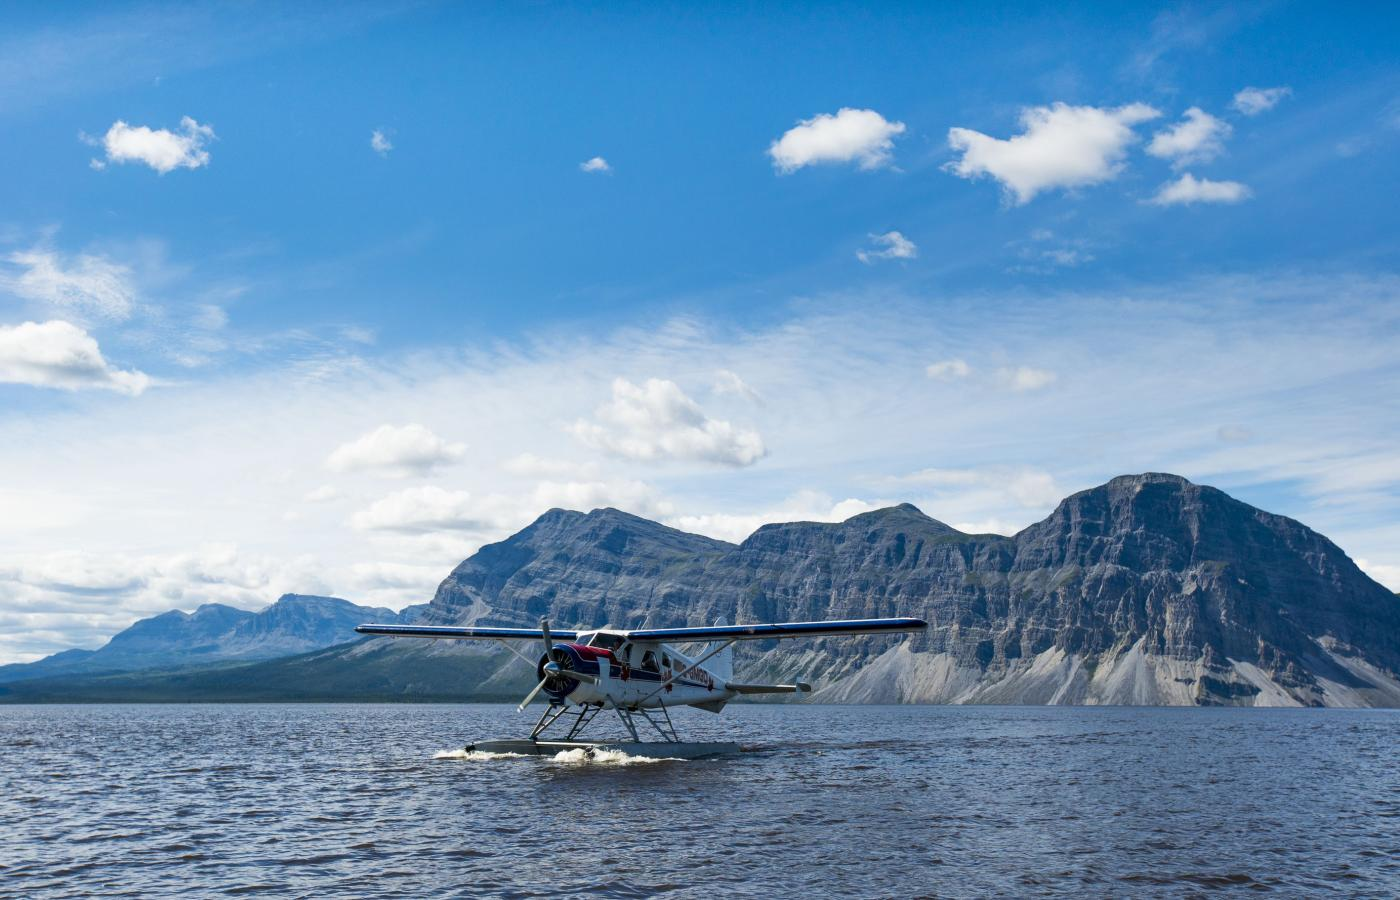 A float plane on the water in Nahanni National Park in the spectacular Northwest territories